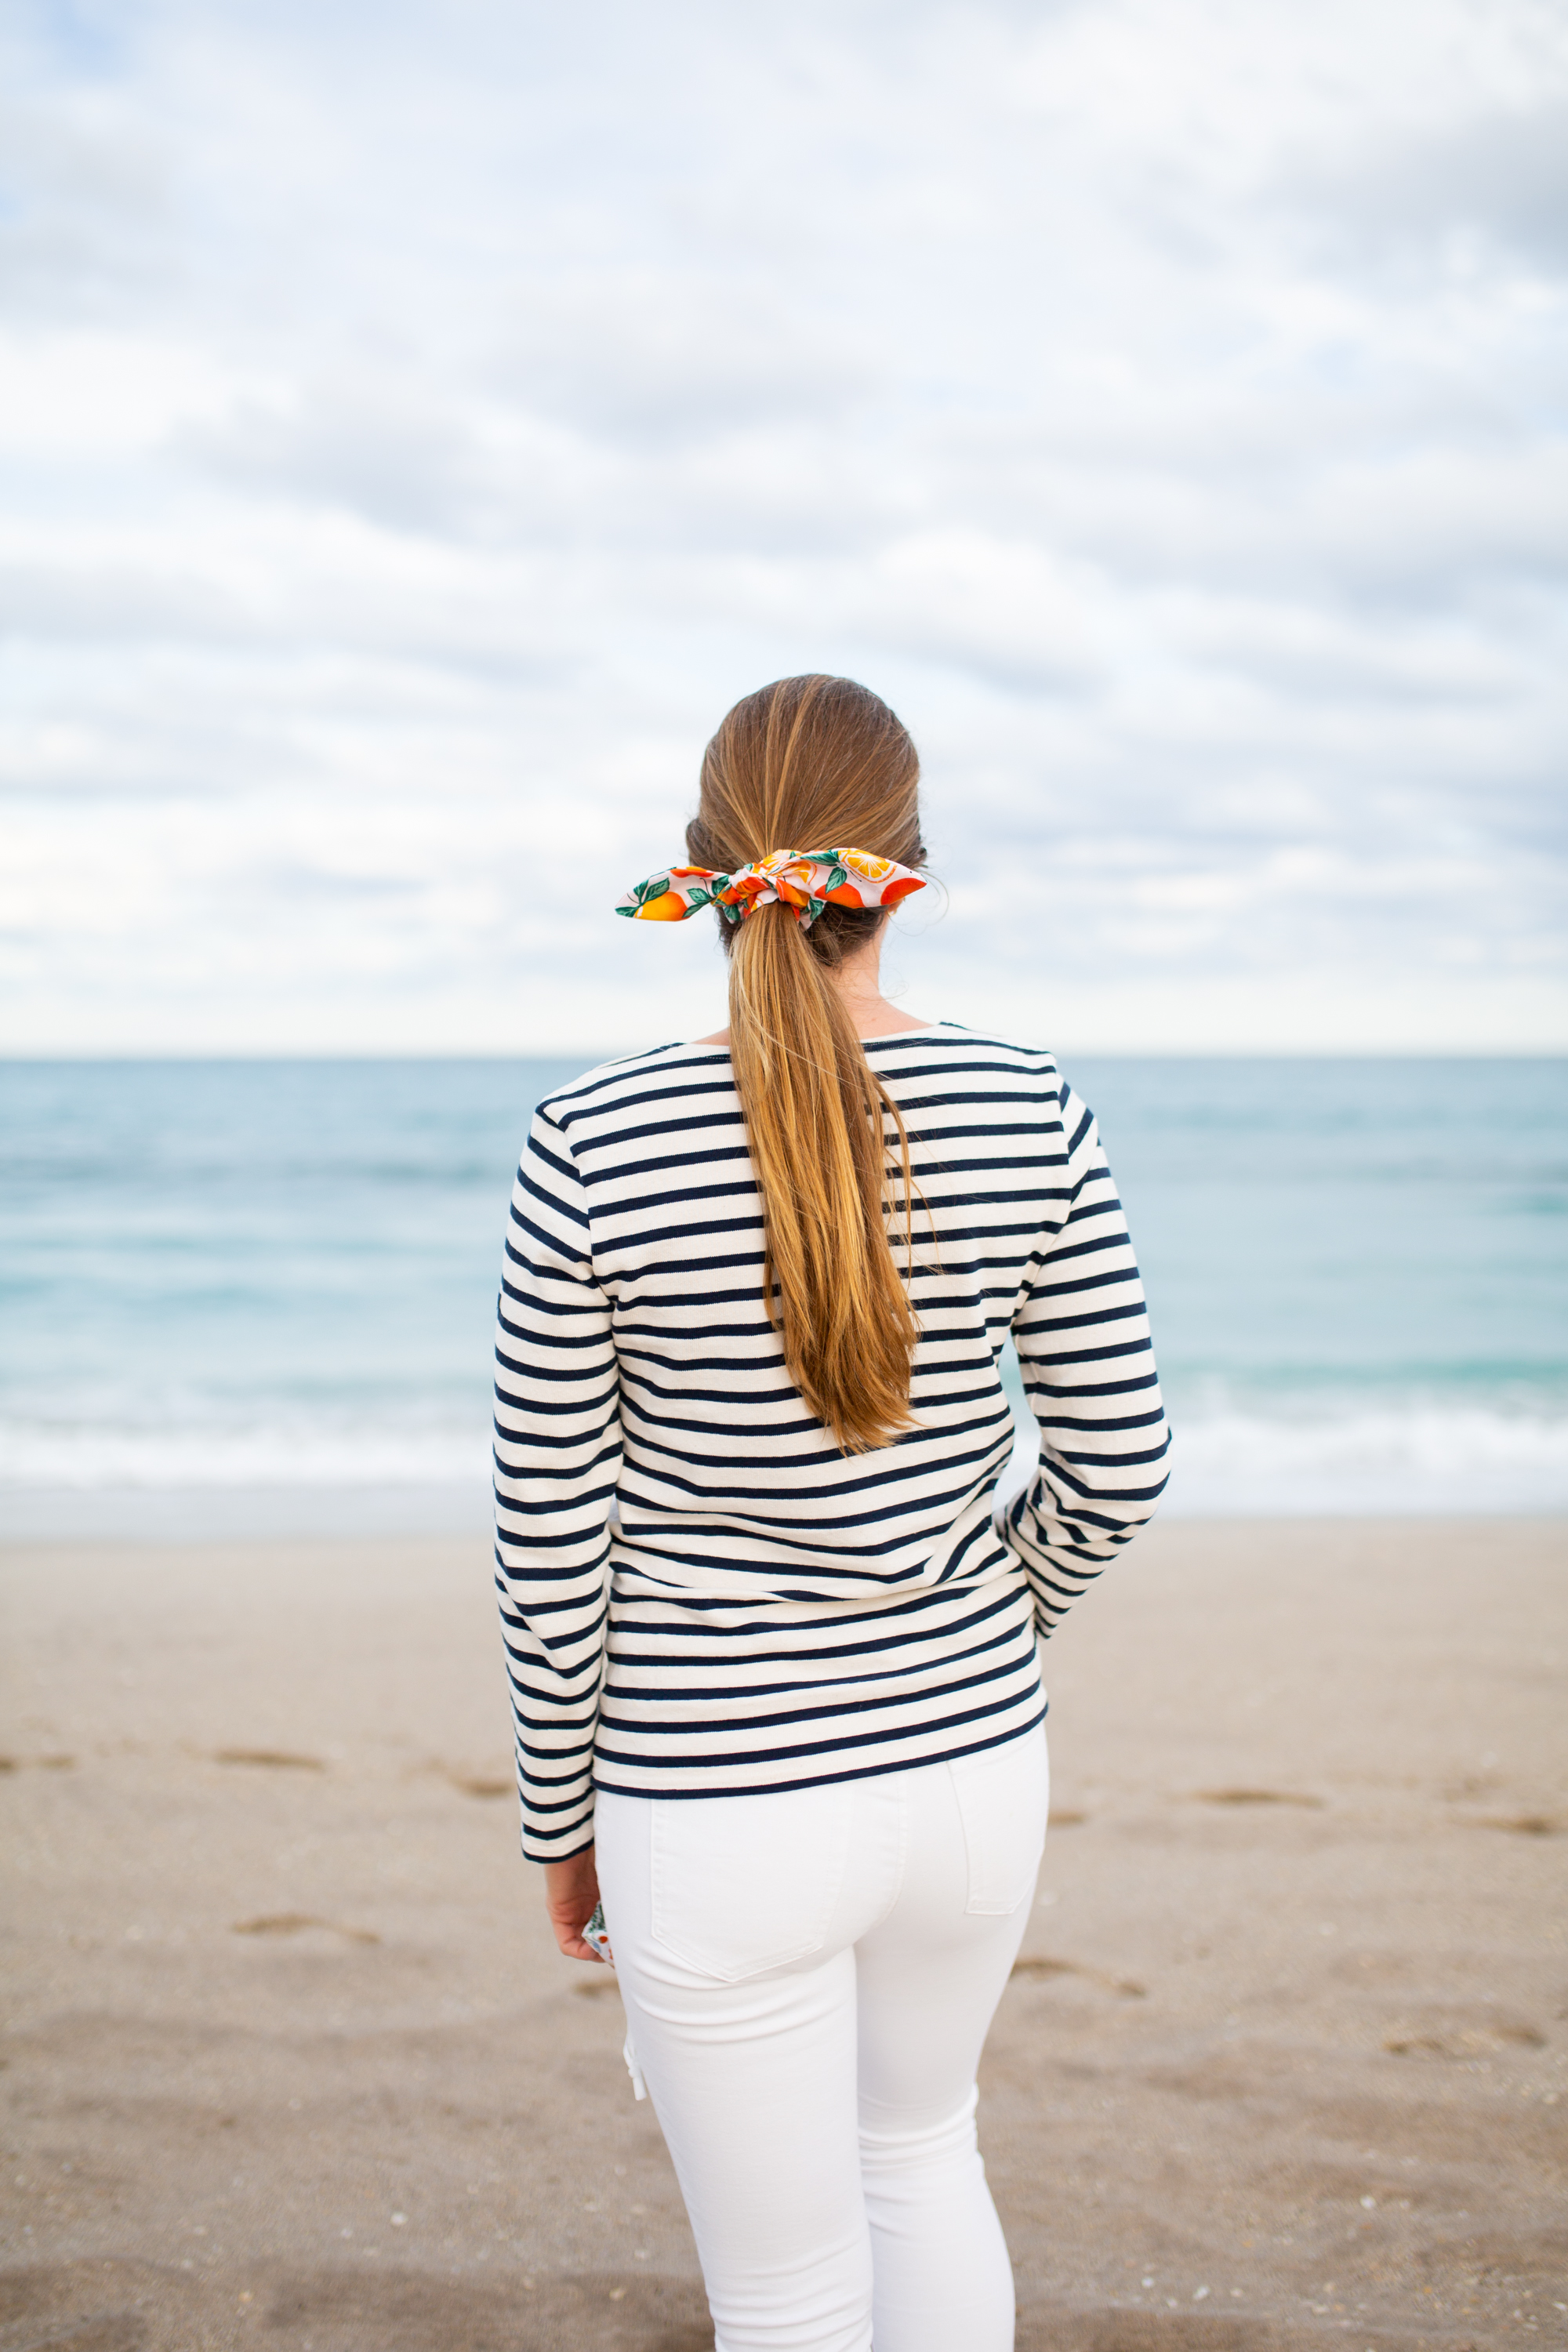 woman standing at the shore wearing striped shirt, white pants, and hair is tied for working full time, running a business, and blogging post